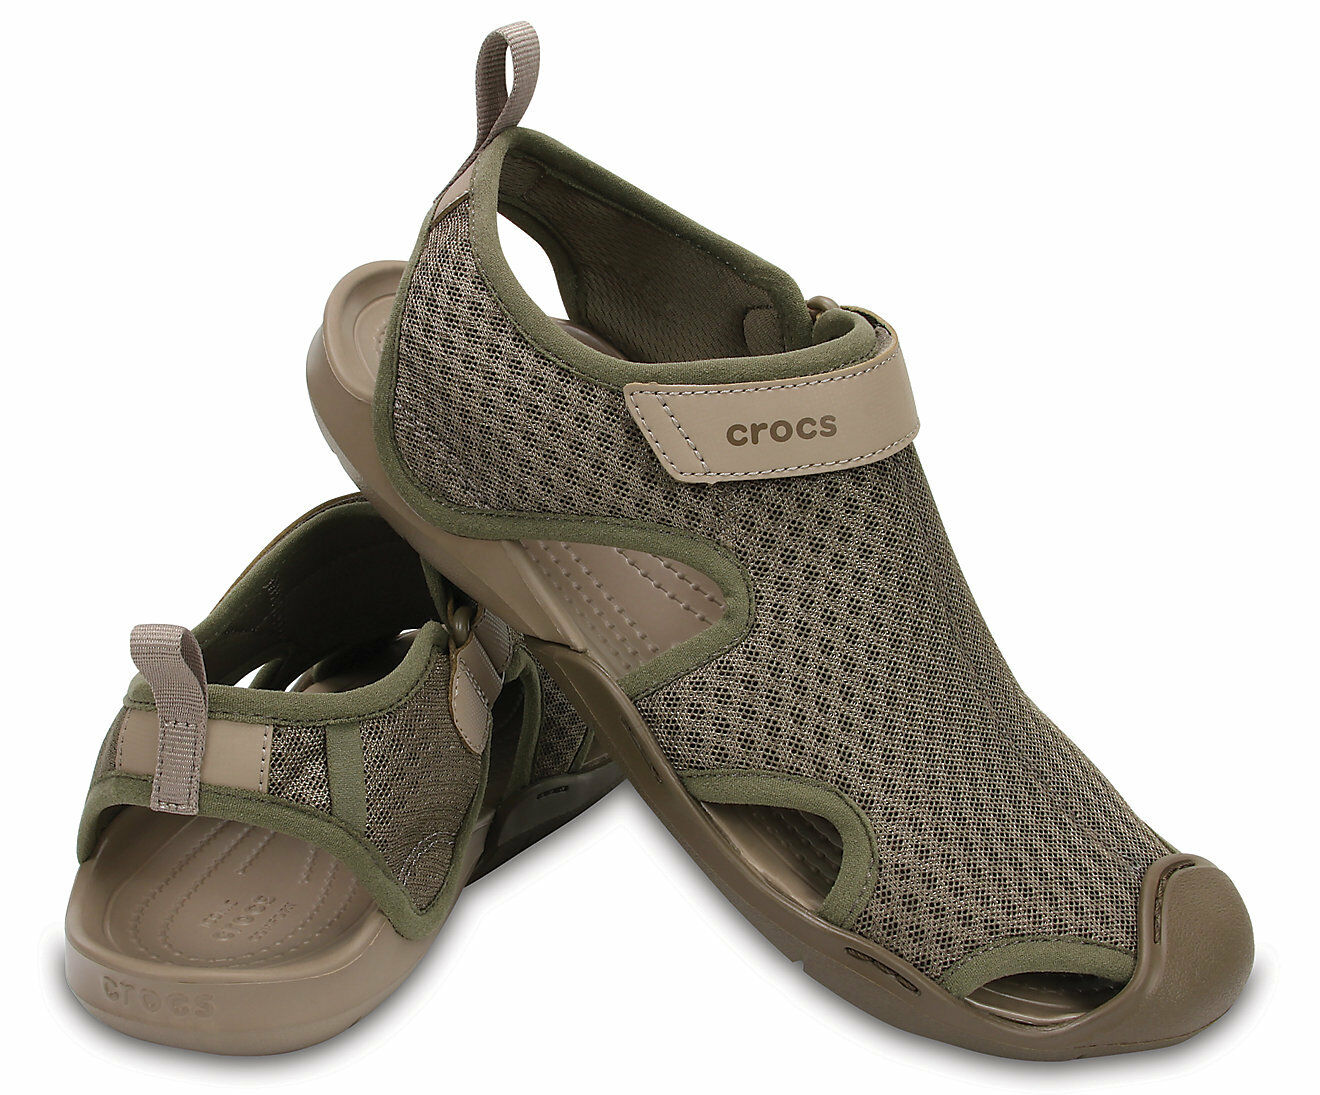 Crocs Swiftwater Mesh Water shoes Sandals Walnut Sz 8 NWT